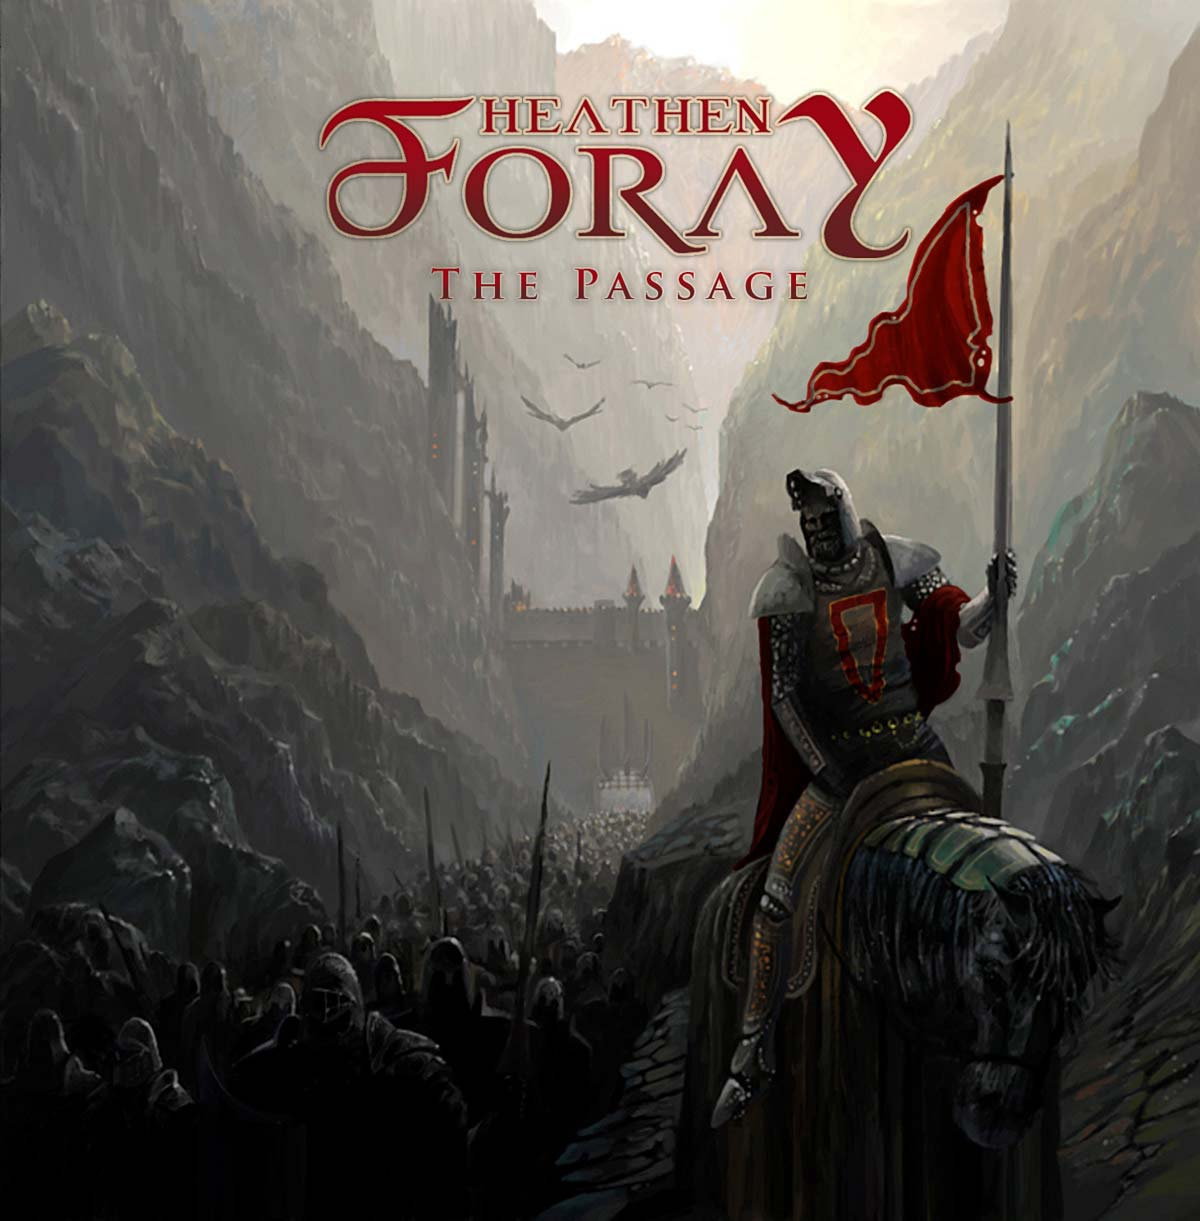 Cover of The Passage by Heathen Foray